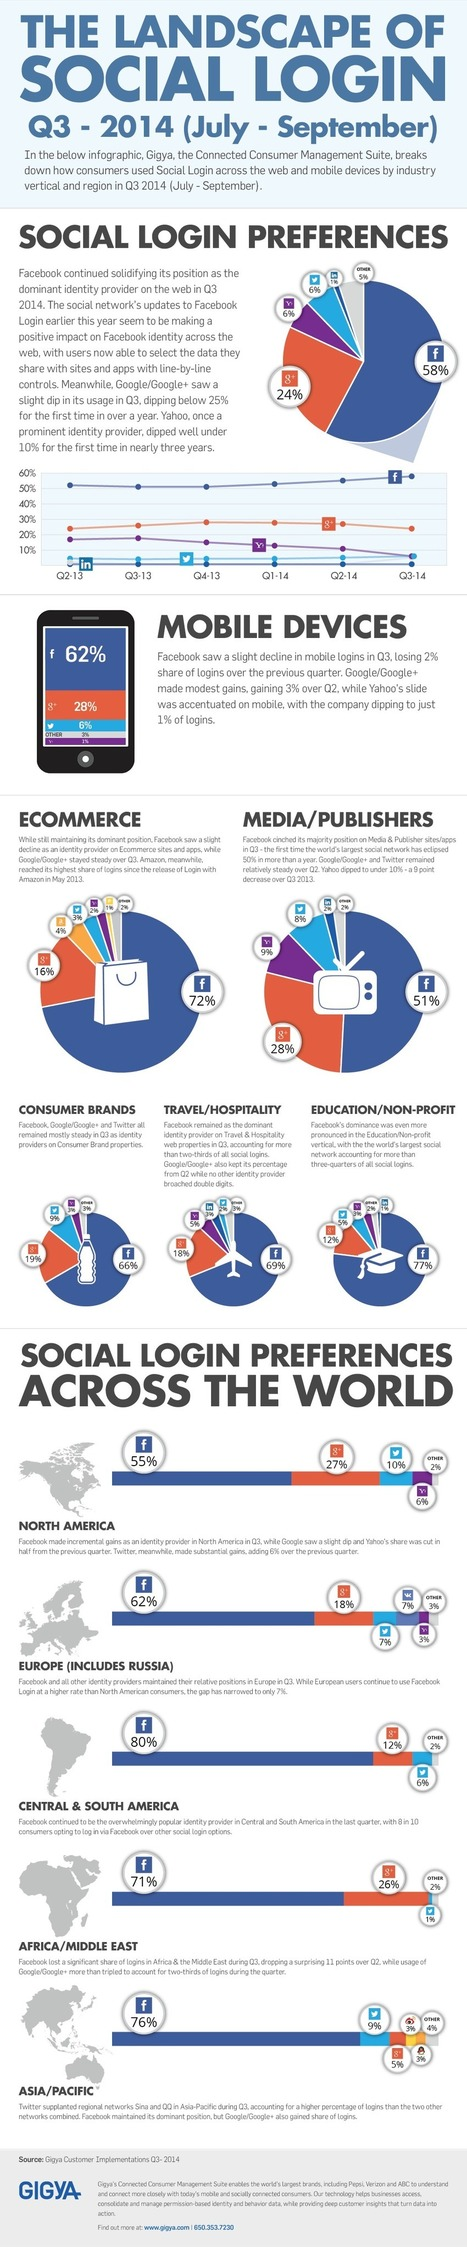 The Landscape of Social Login: Facebook Trends Up as Yahoo Tumbles [Q3 2014] | Digital Media | Scoop.it